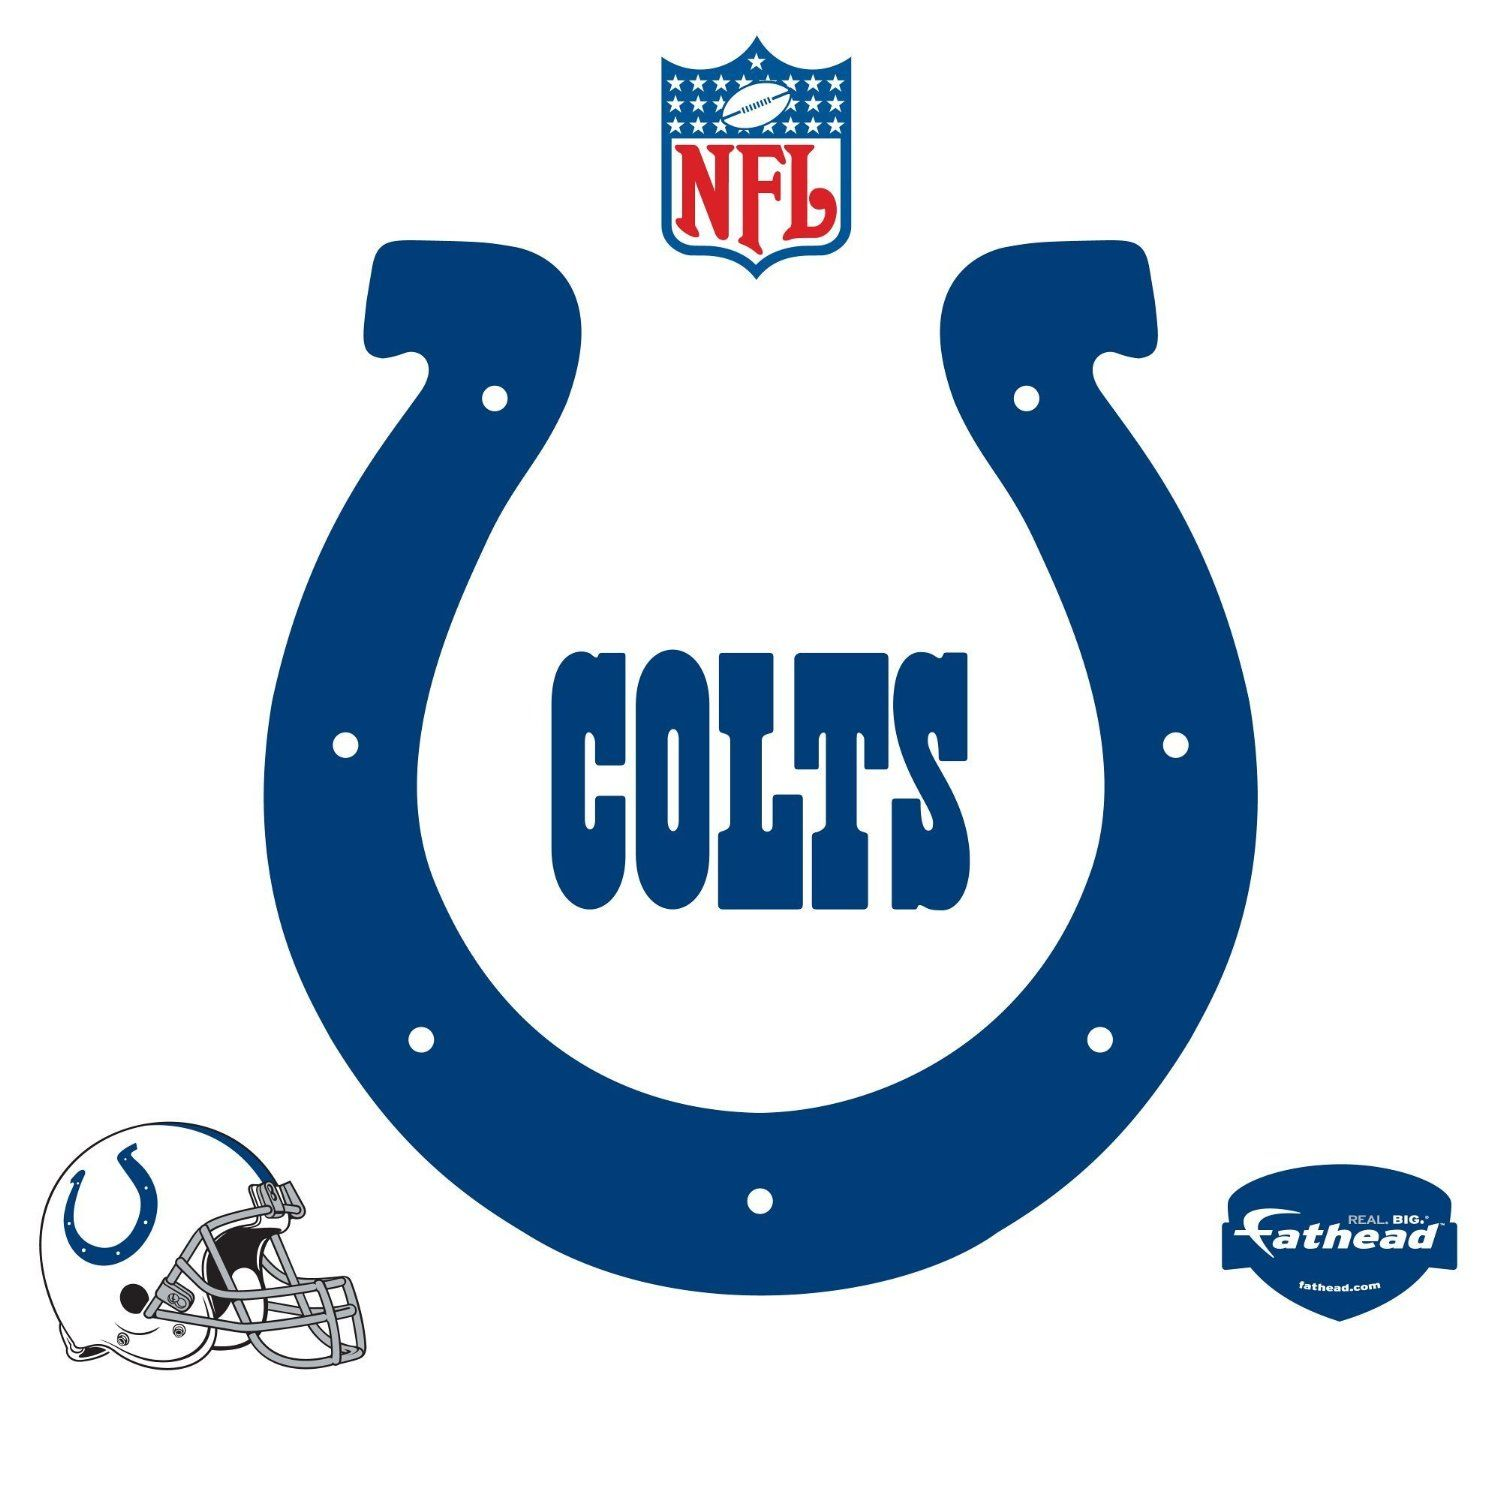 Indianapolis Colts Logos | THE POWER SUPER BOWL | Pinterest